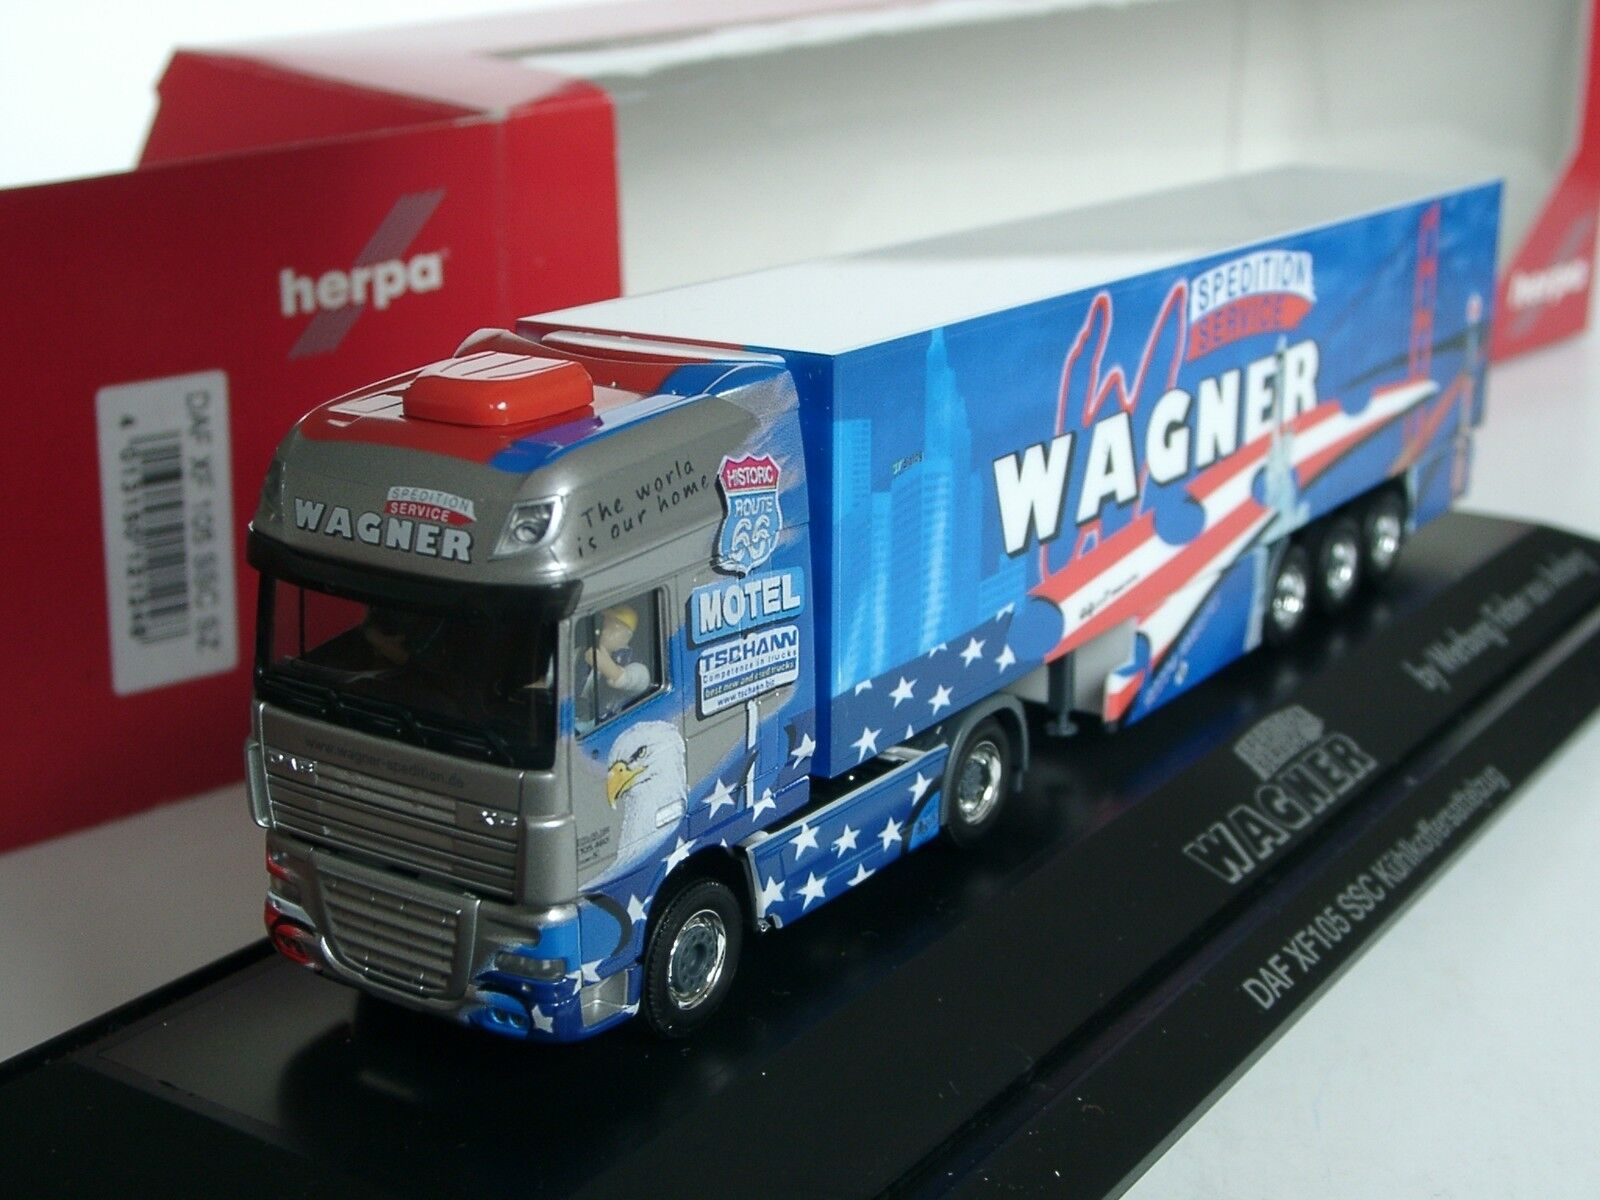 HERPA DAF XF 105 SSC, transporteur Wagner-PC 121248 - 1 87